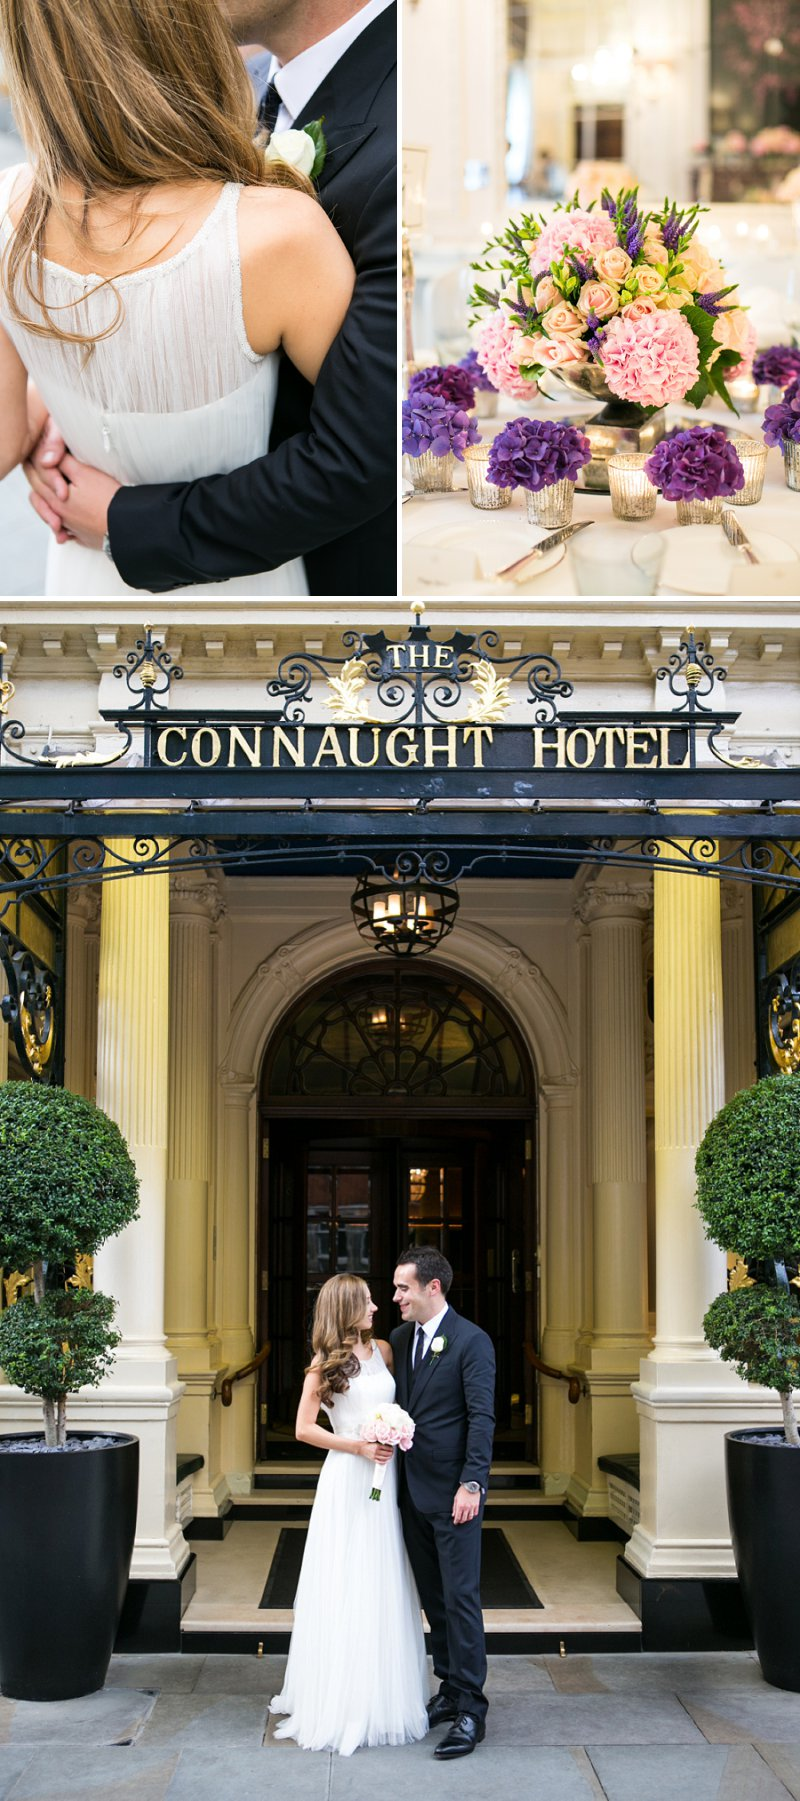 Elegant Wedding At The Connaught Hotel Mayfair With Bride In Derby By Pronovias With Jimmy Choo Sandals And Groom In Navy Suit By D&G With A Colombian Themed Evening Party At Icetank Covent Garden With Images From Anneli Marinovich 1